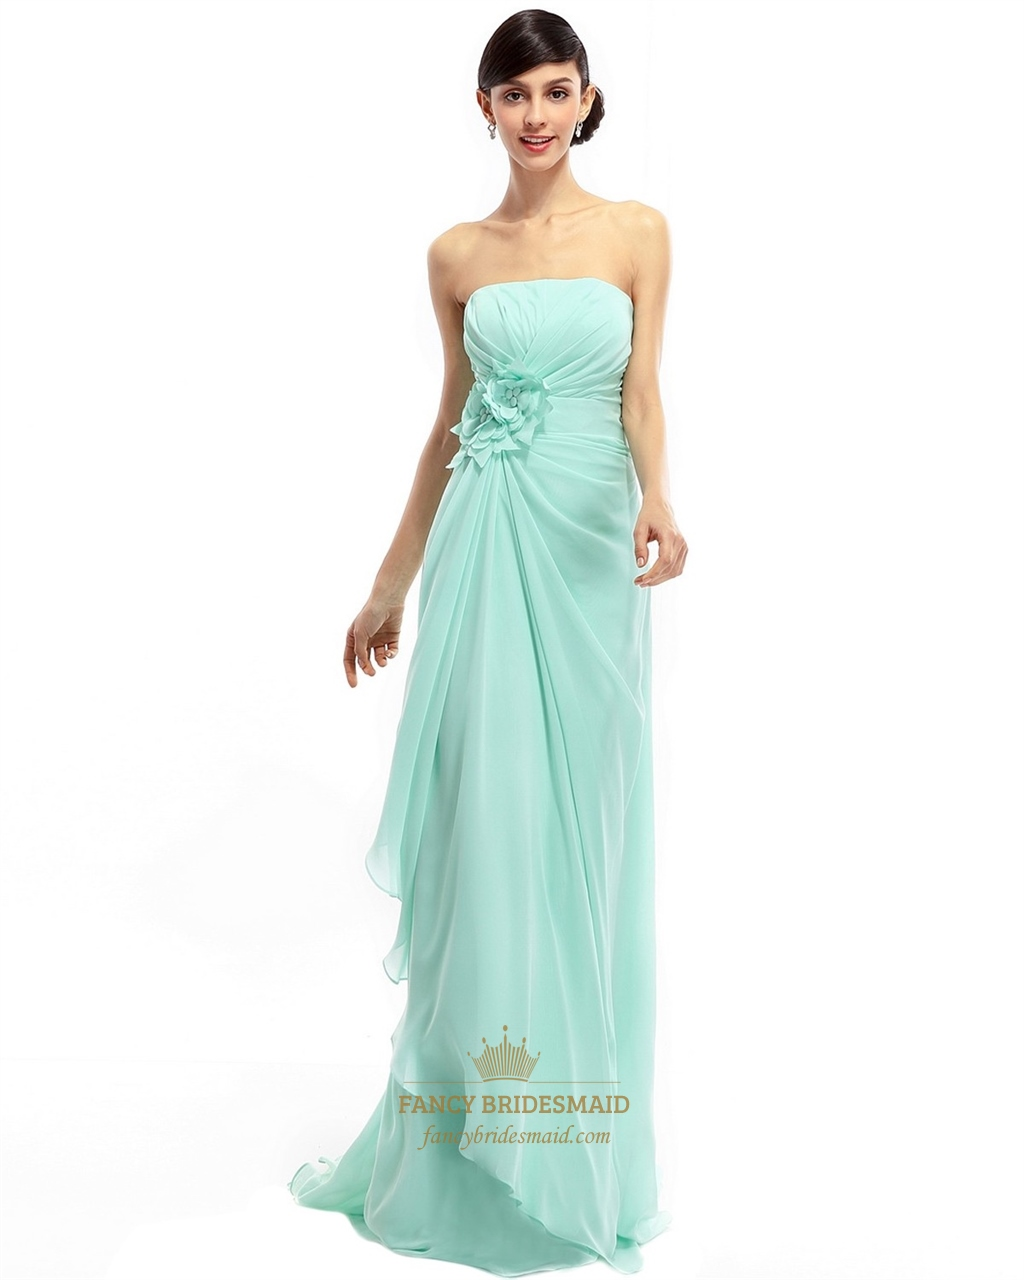 Mint Green Chiffon Strapless Bridesmaid Dress With Cascading Ruffles ...